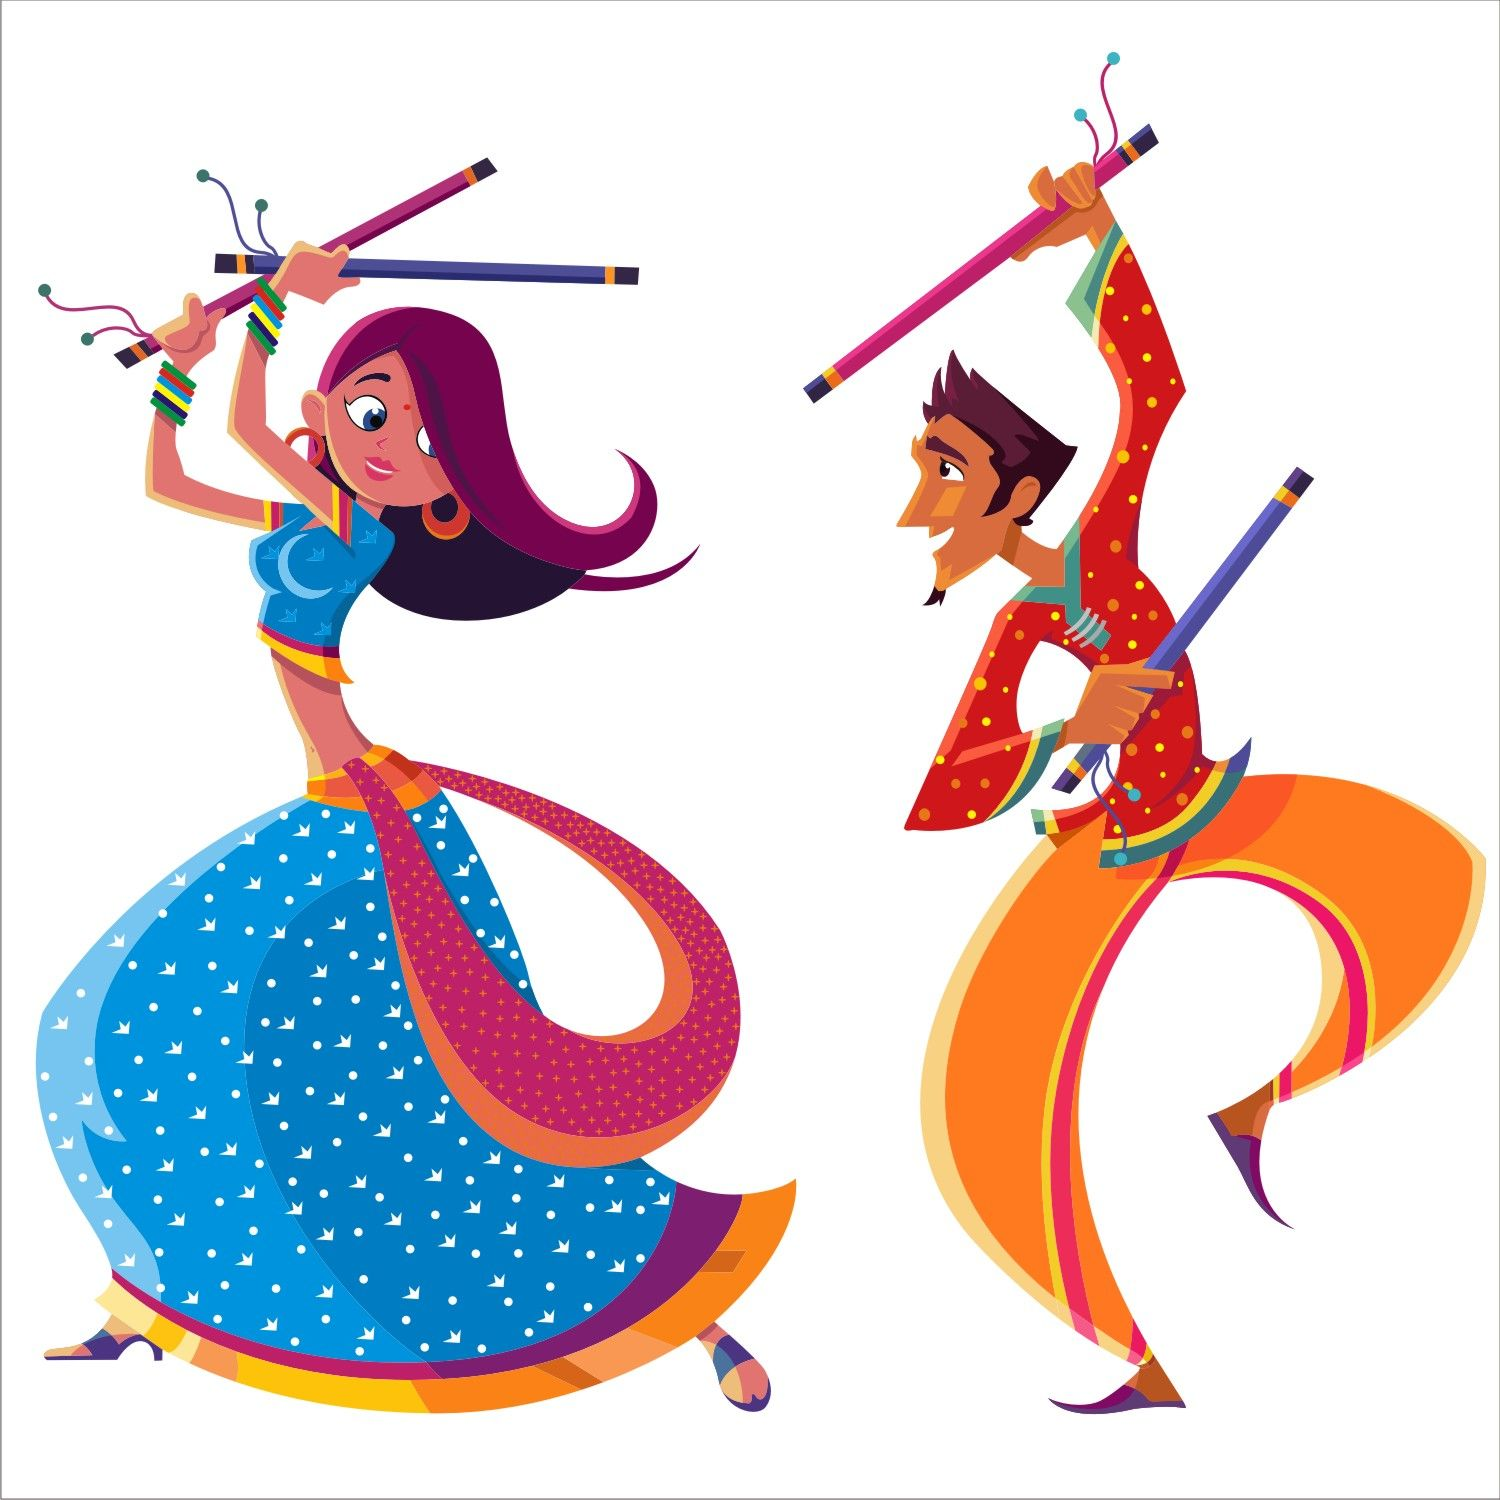 The spirit of the Dandiya dance, as part of the Navratri